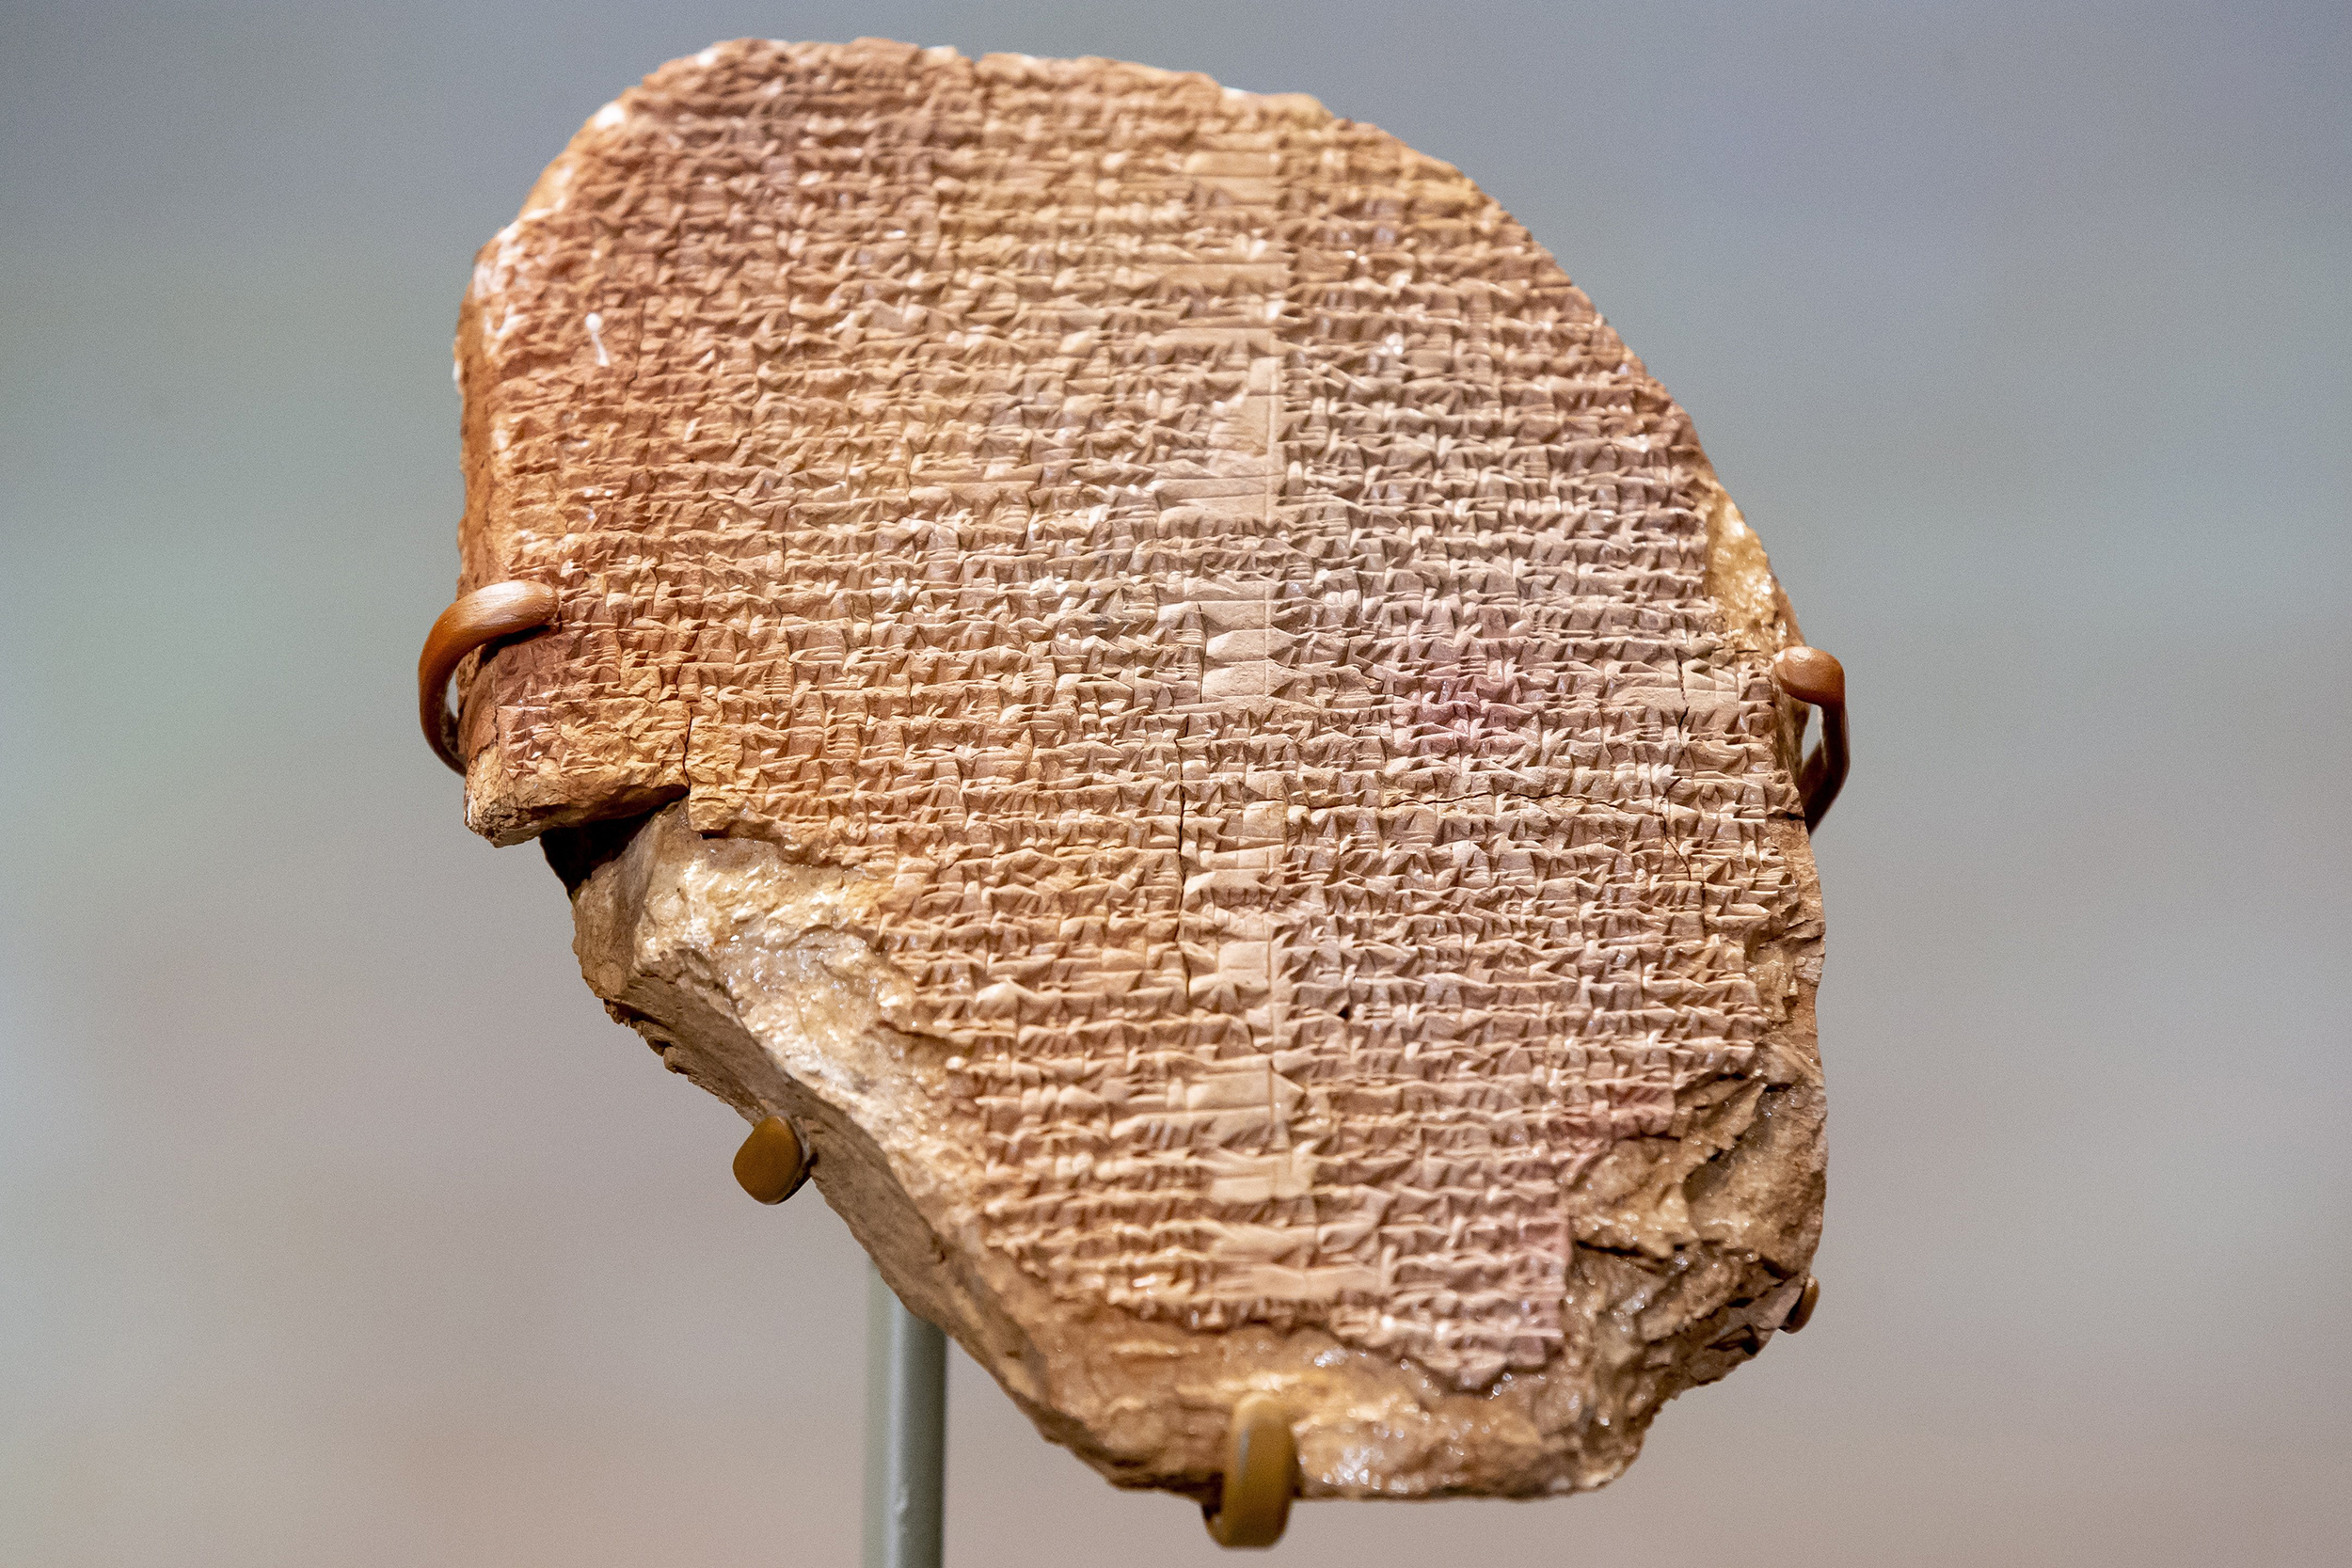 Ancient Gilgamesh tablet taken from Iraq and bought by Hobby Lobby is returned